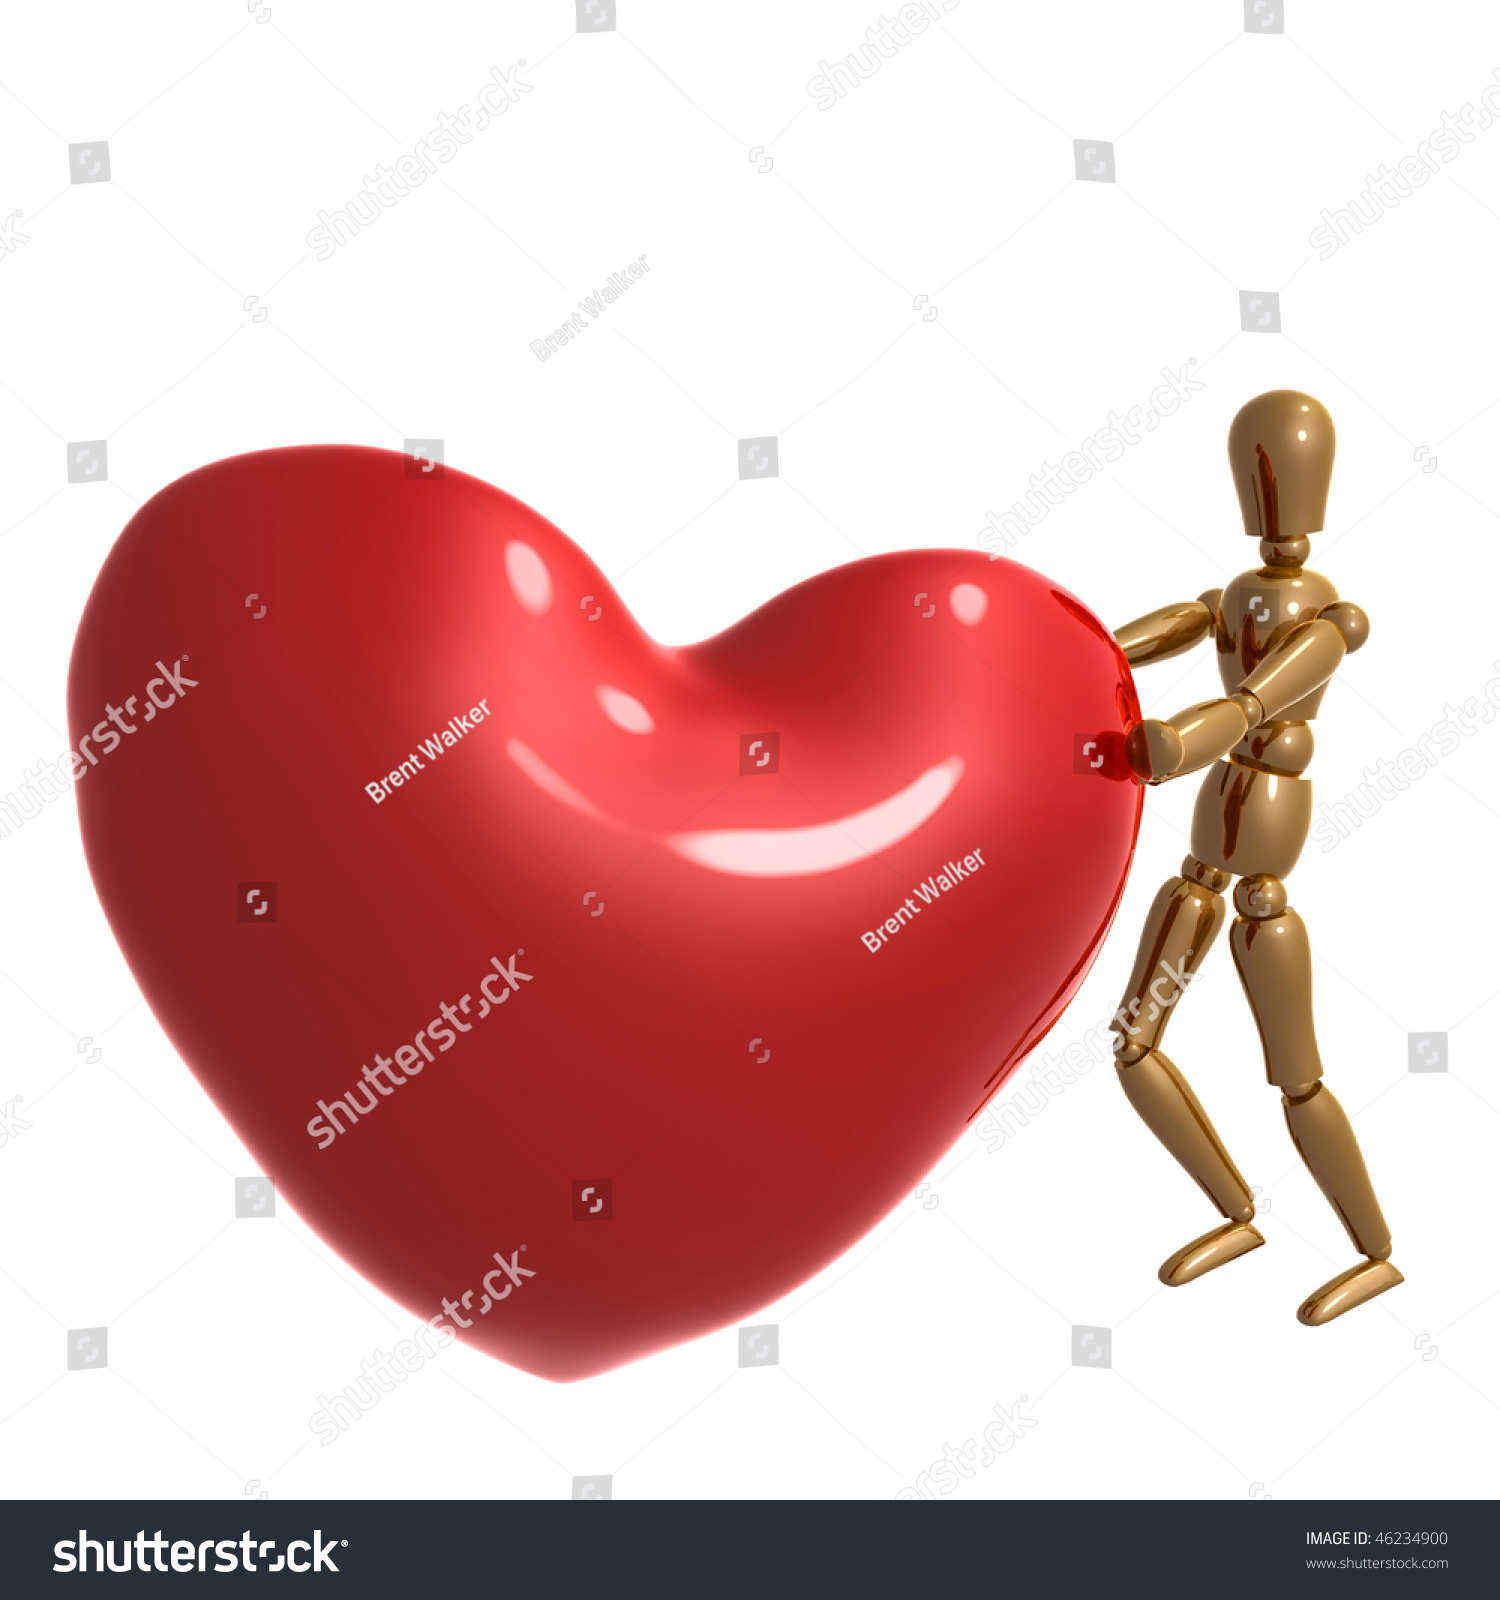 Dummy figure pushing big heart symbol stock illustration 46234900 dummy figure pushing big heart symbol buycottarizona Image collections